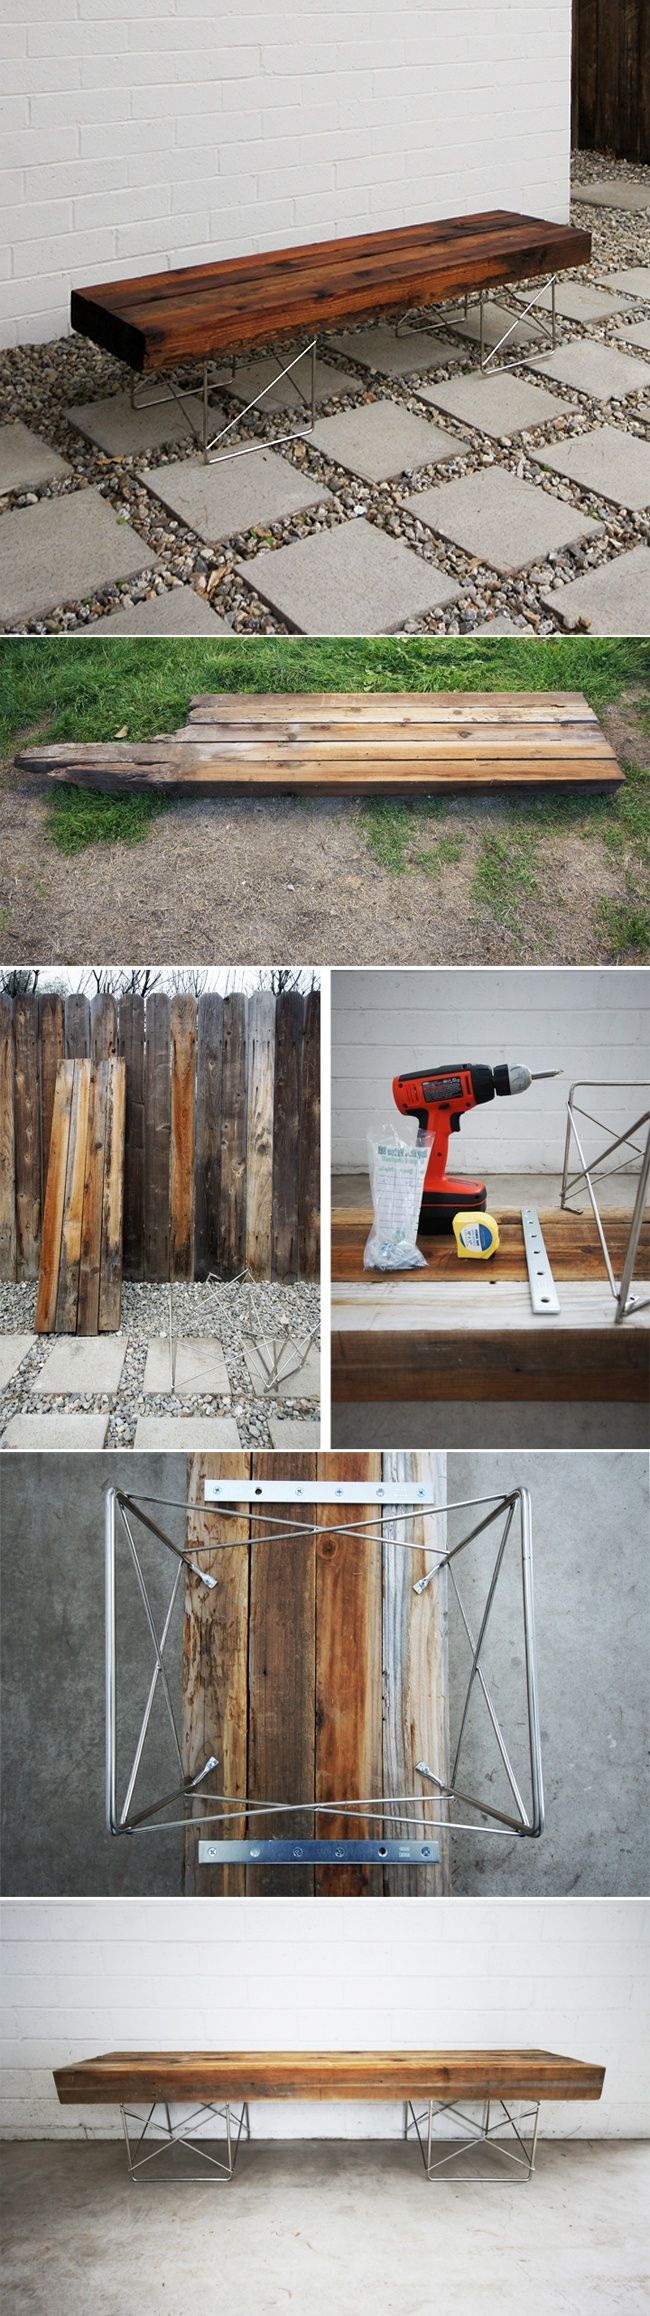 223 besten diy projects Bilder auf Pinterest